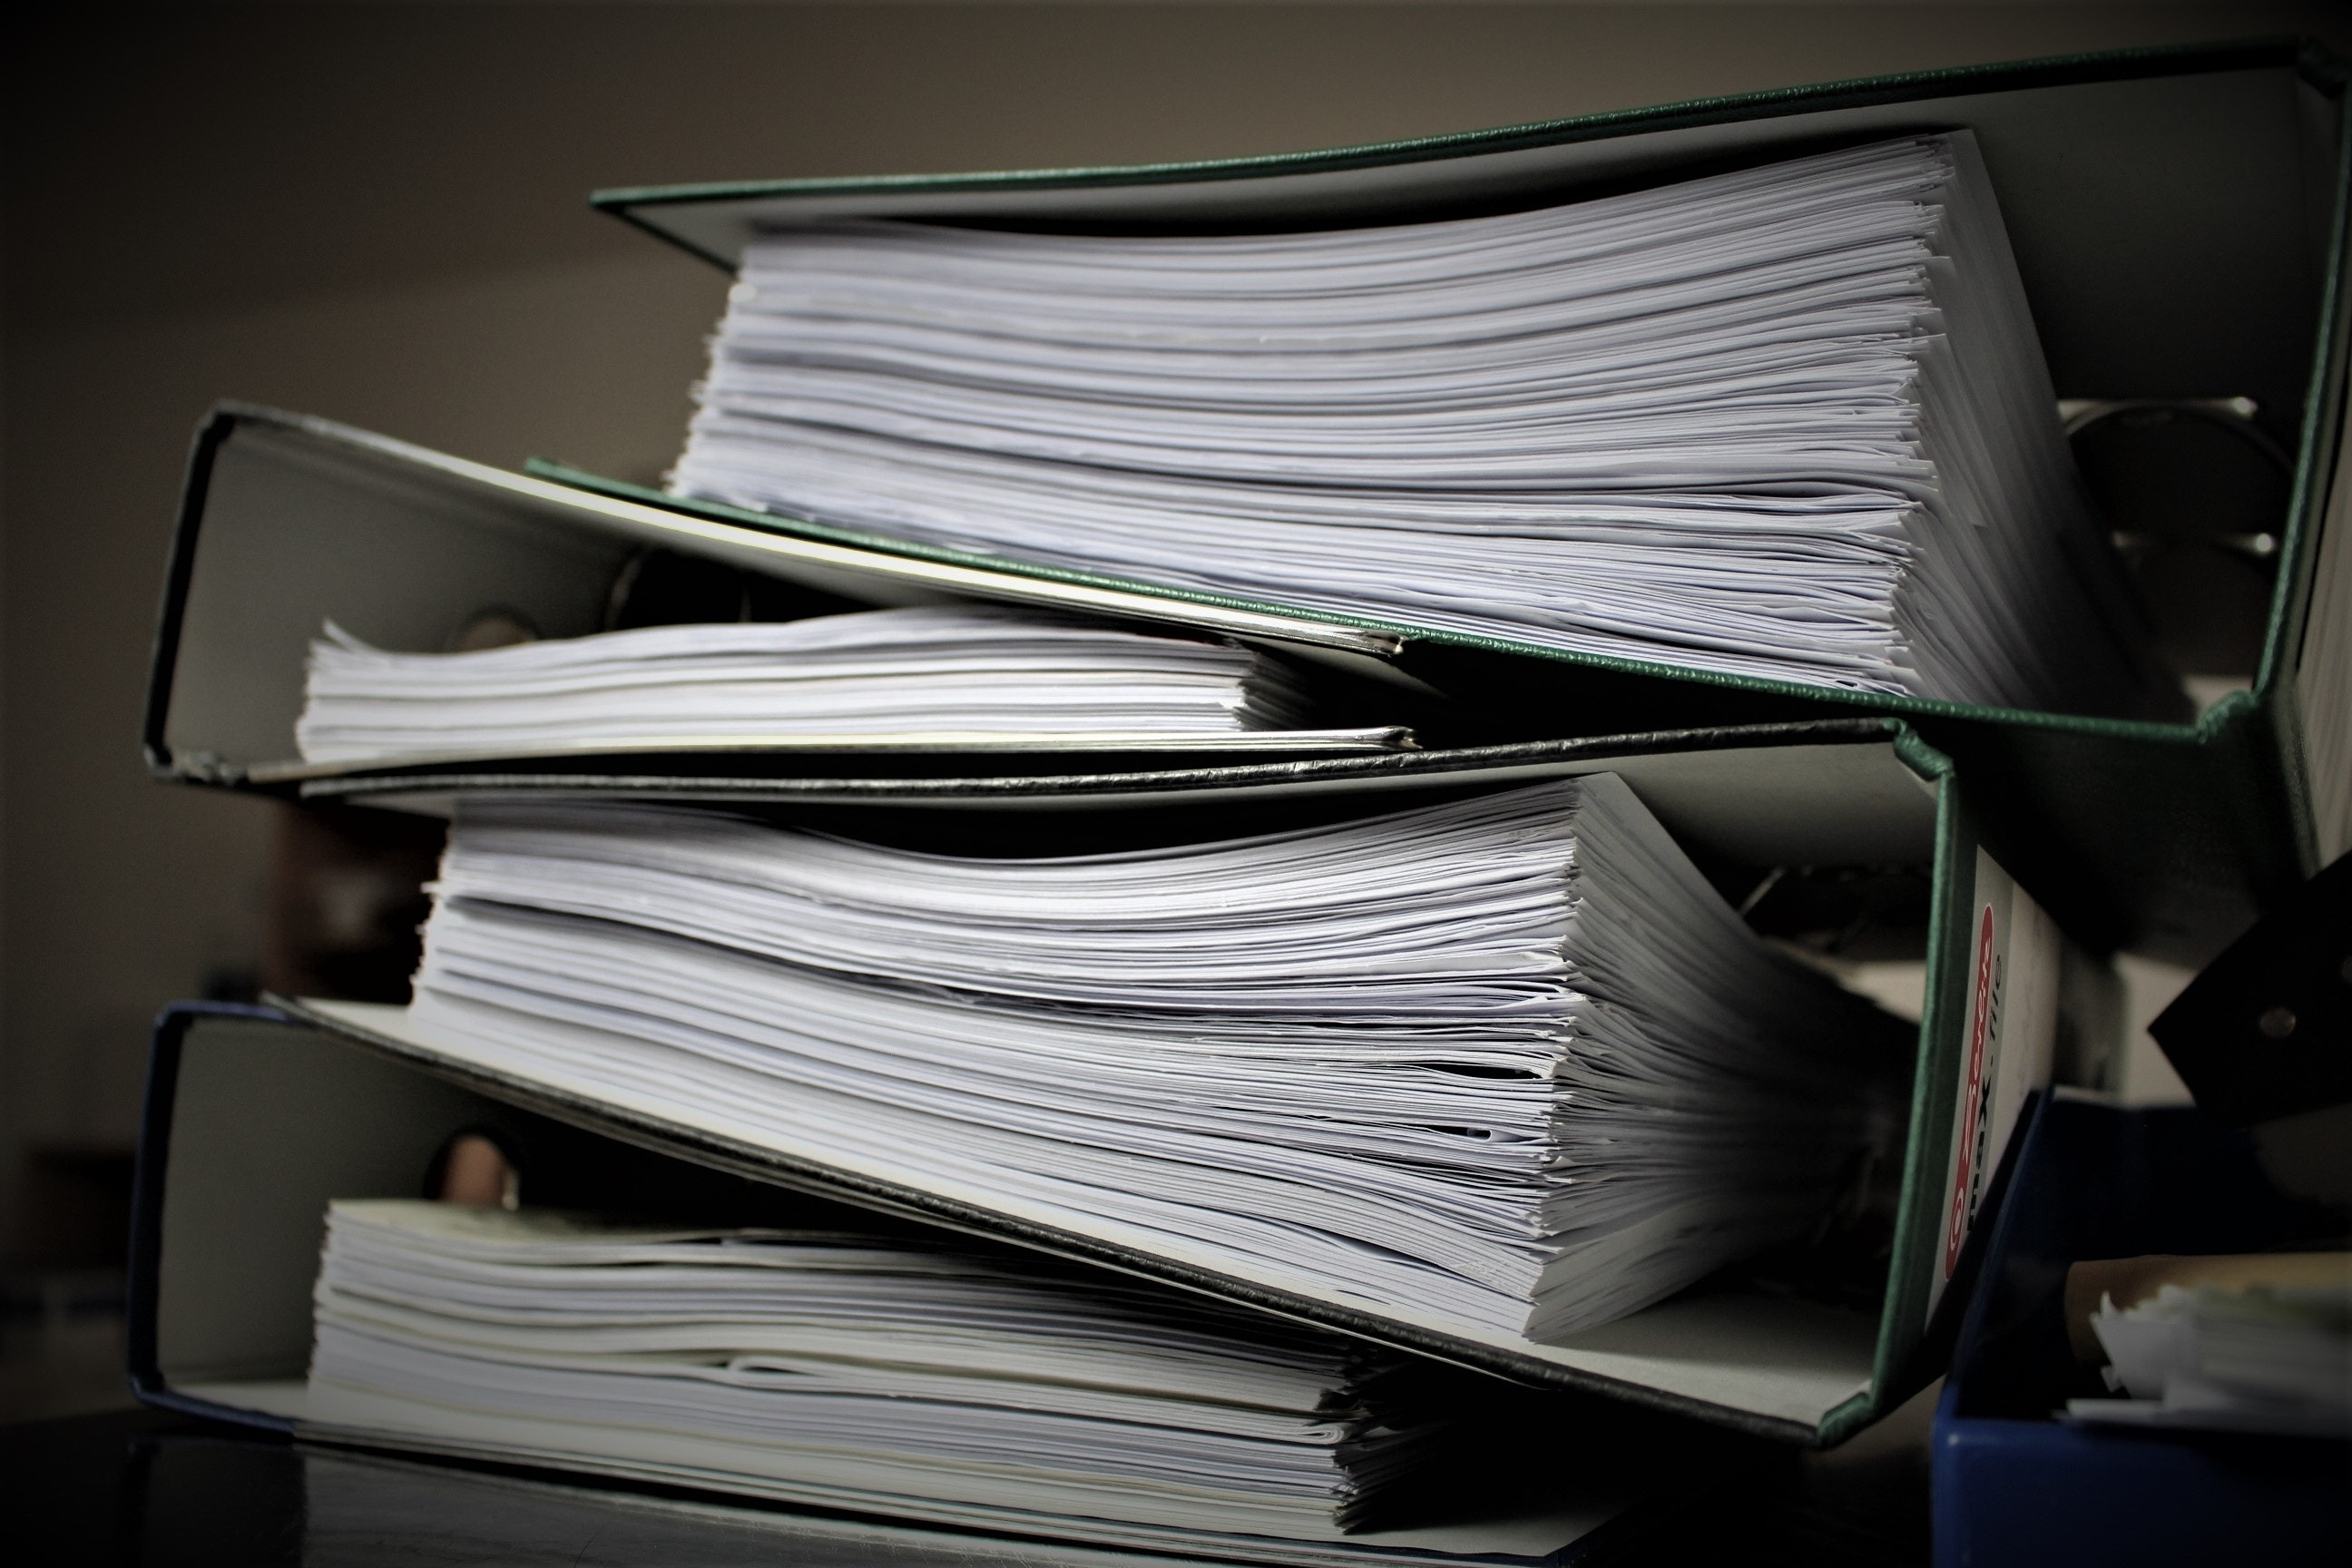 binders full of paperwork stacked in a pile